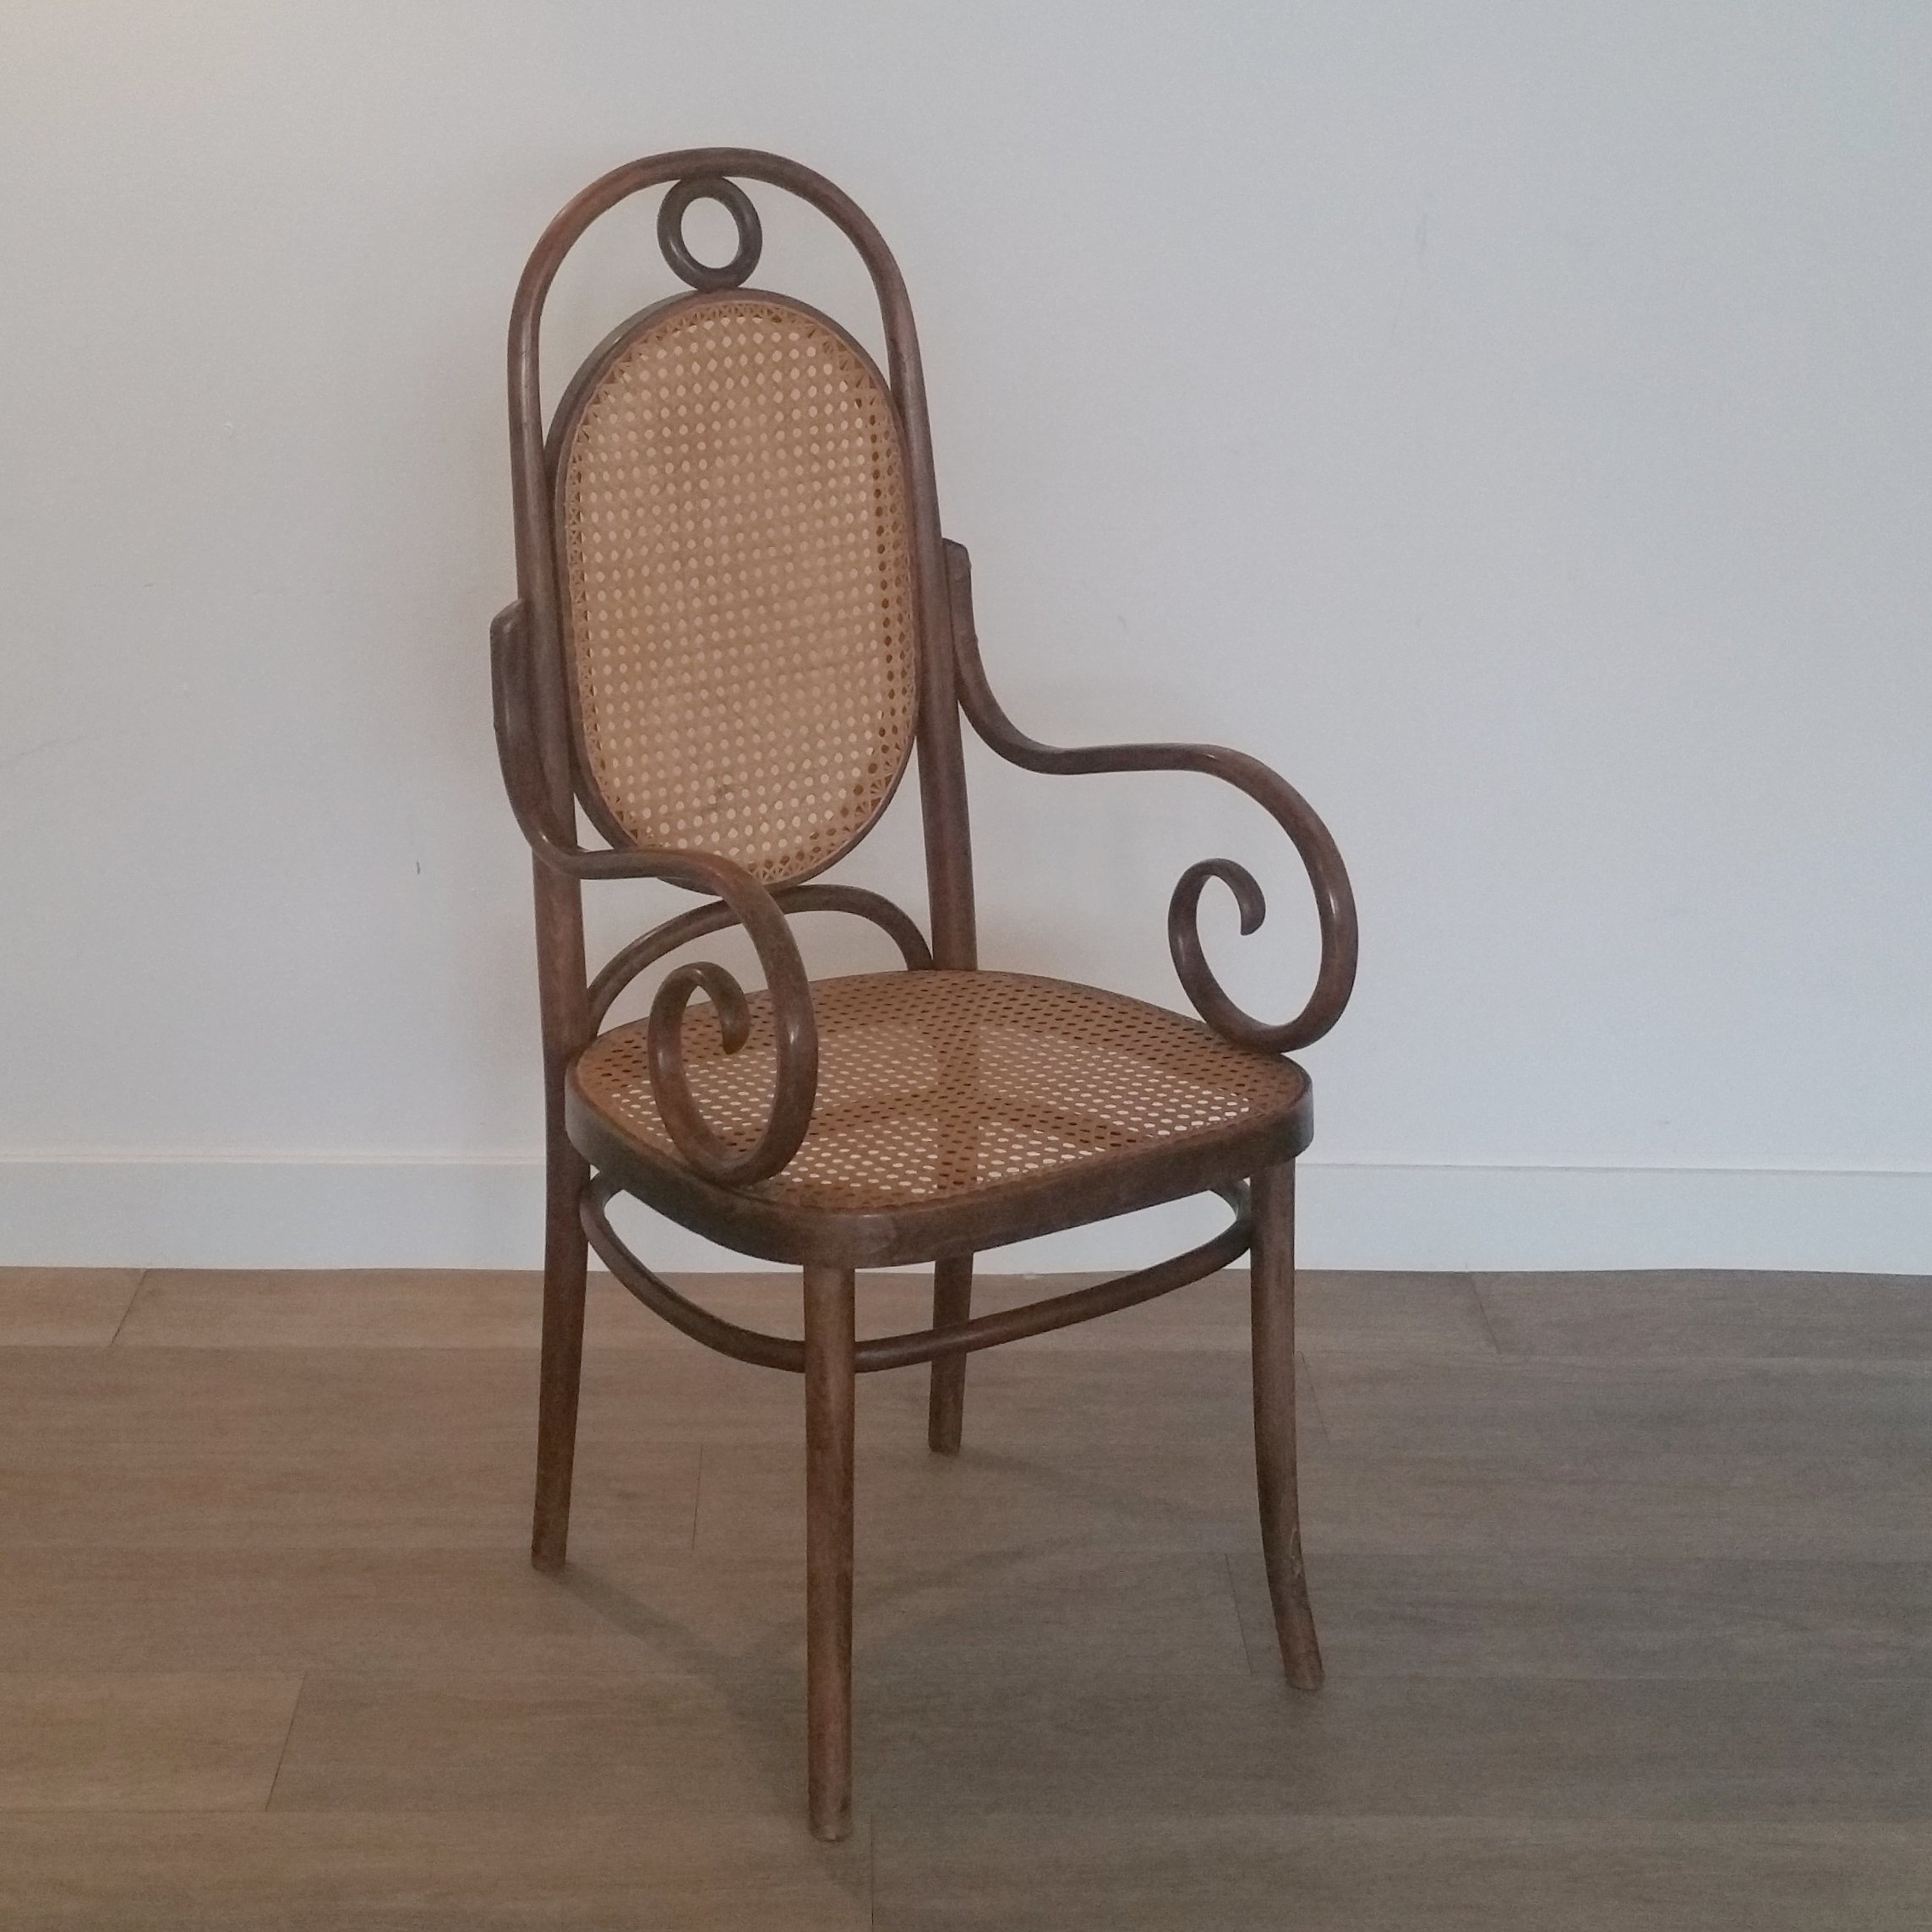 High Back Beech Rattan Chair No 17 From Fmg 1960s 111040